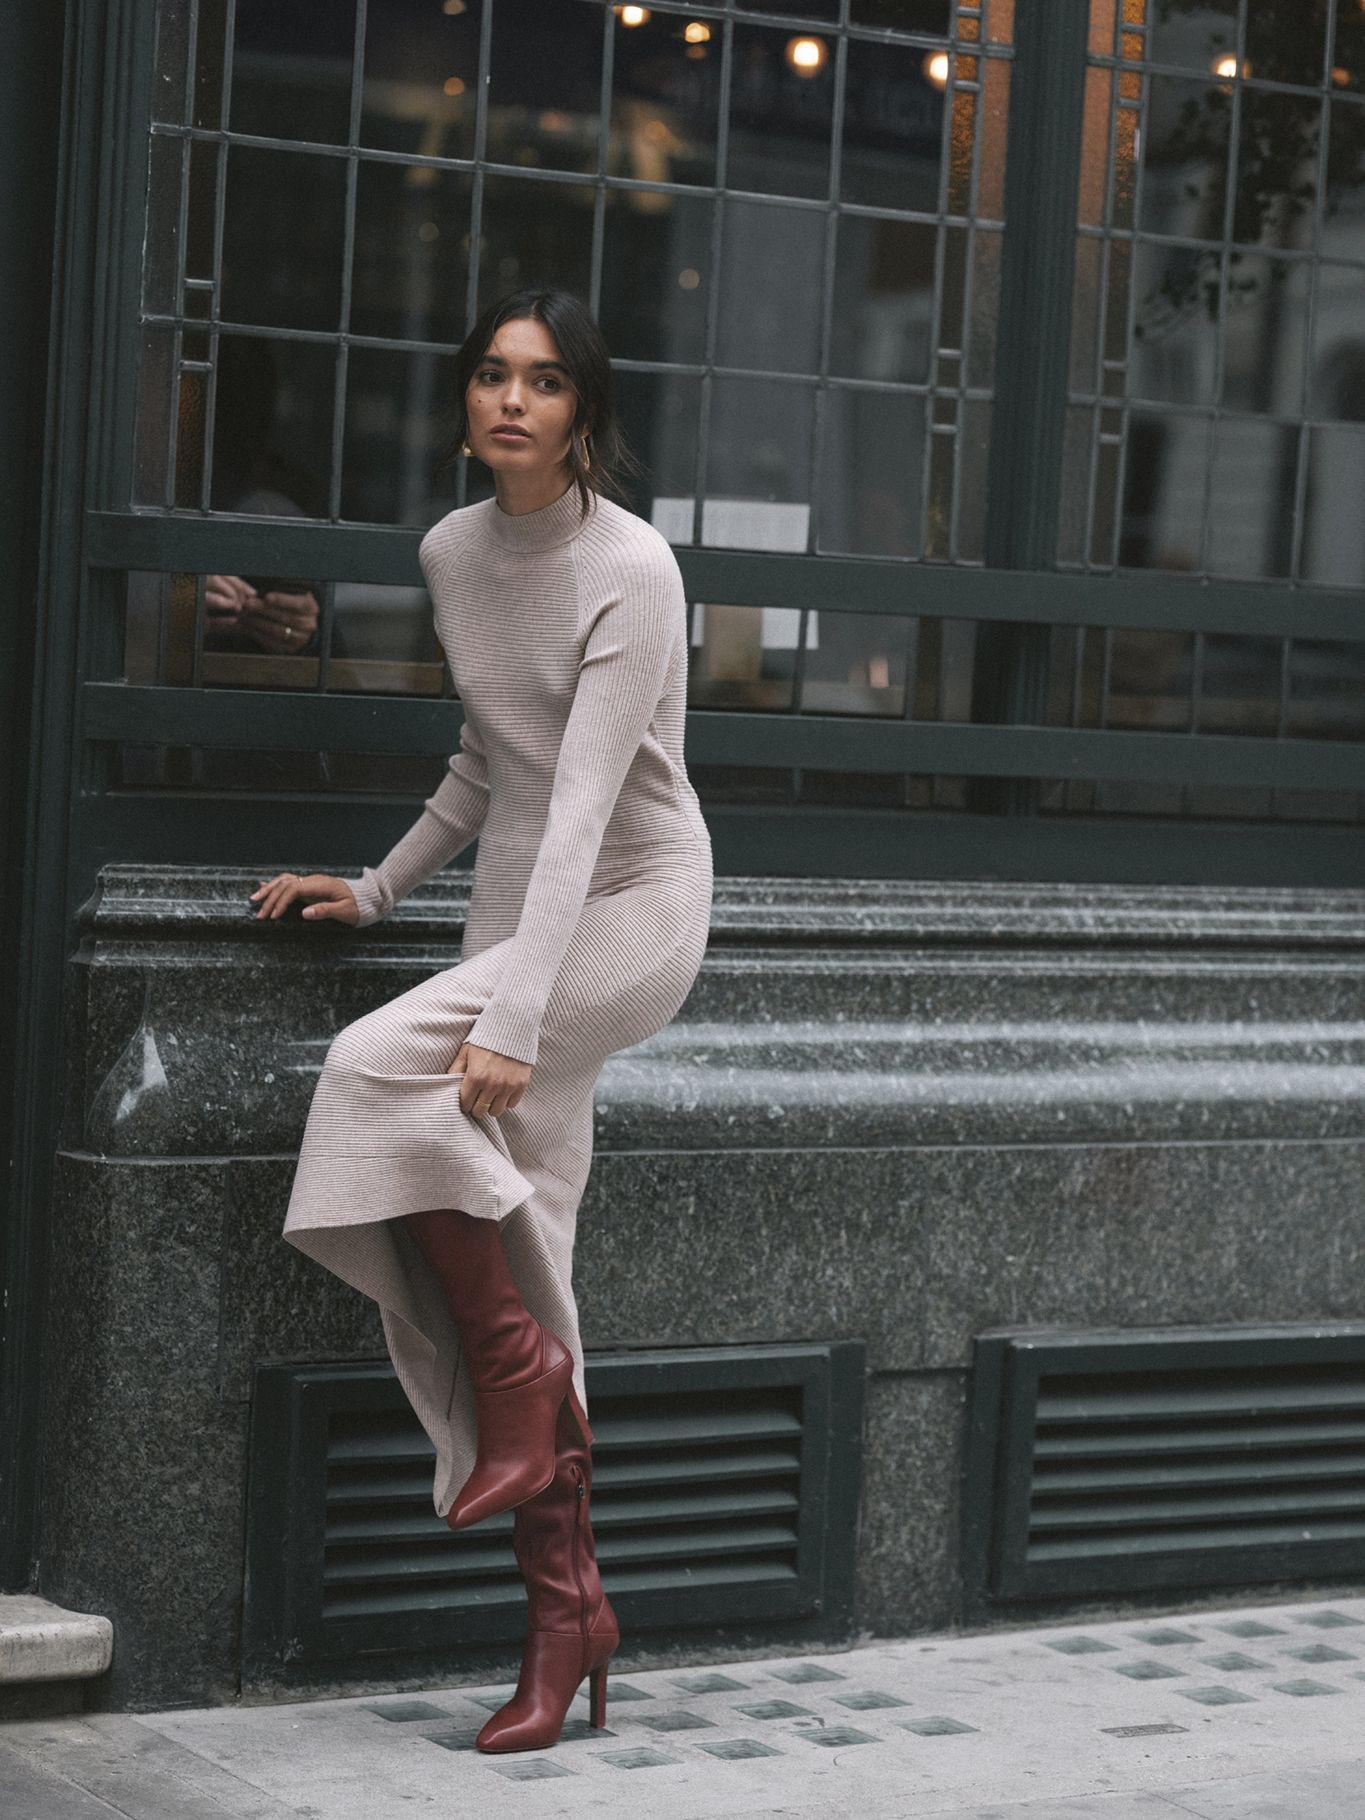 Jumper dress street style, street fashion, fashion model, polo neck, t shirt